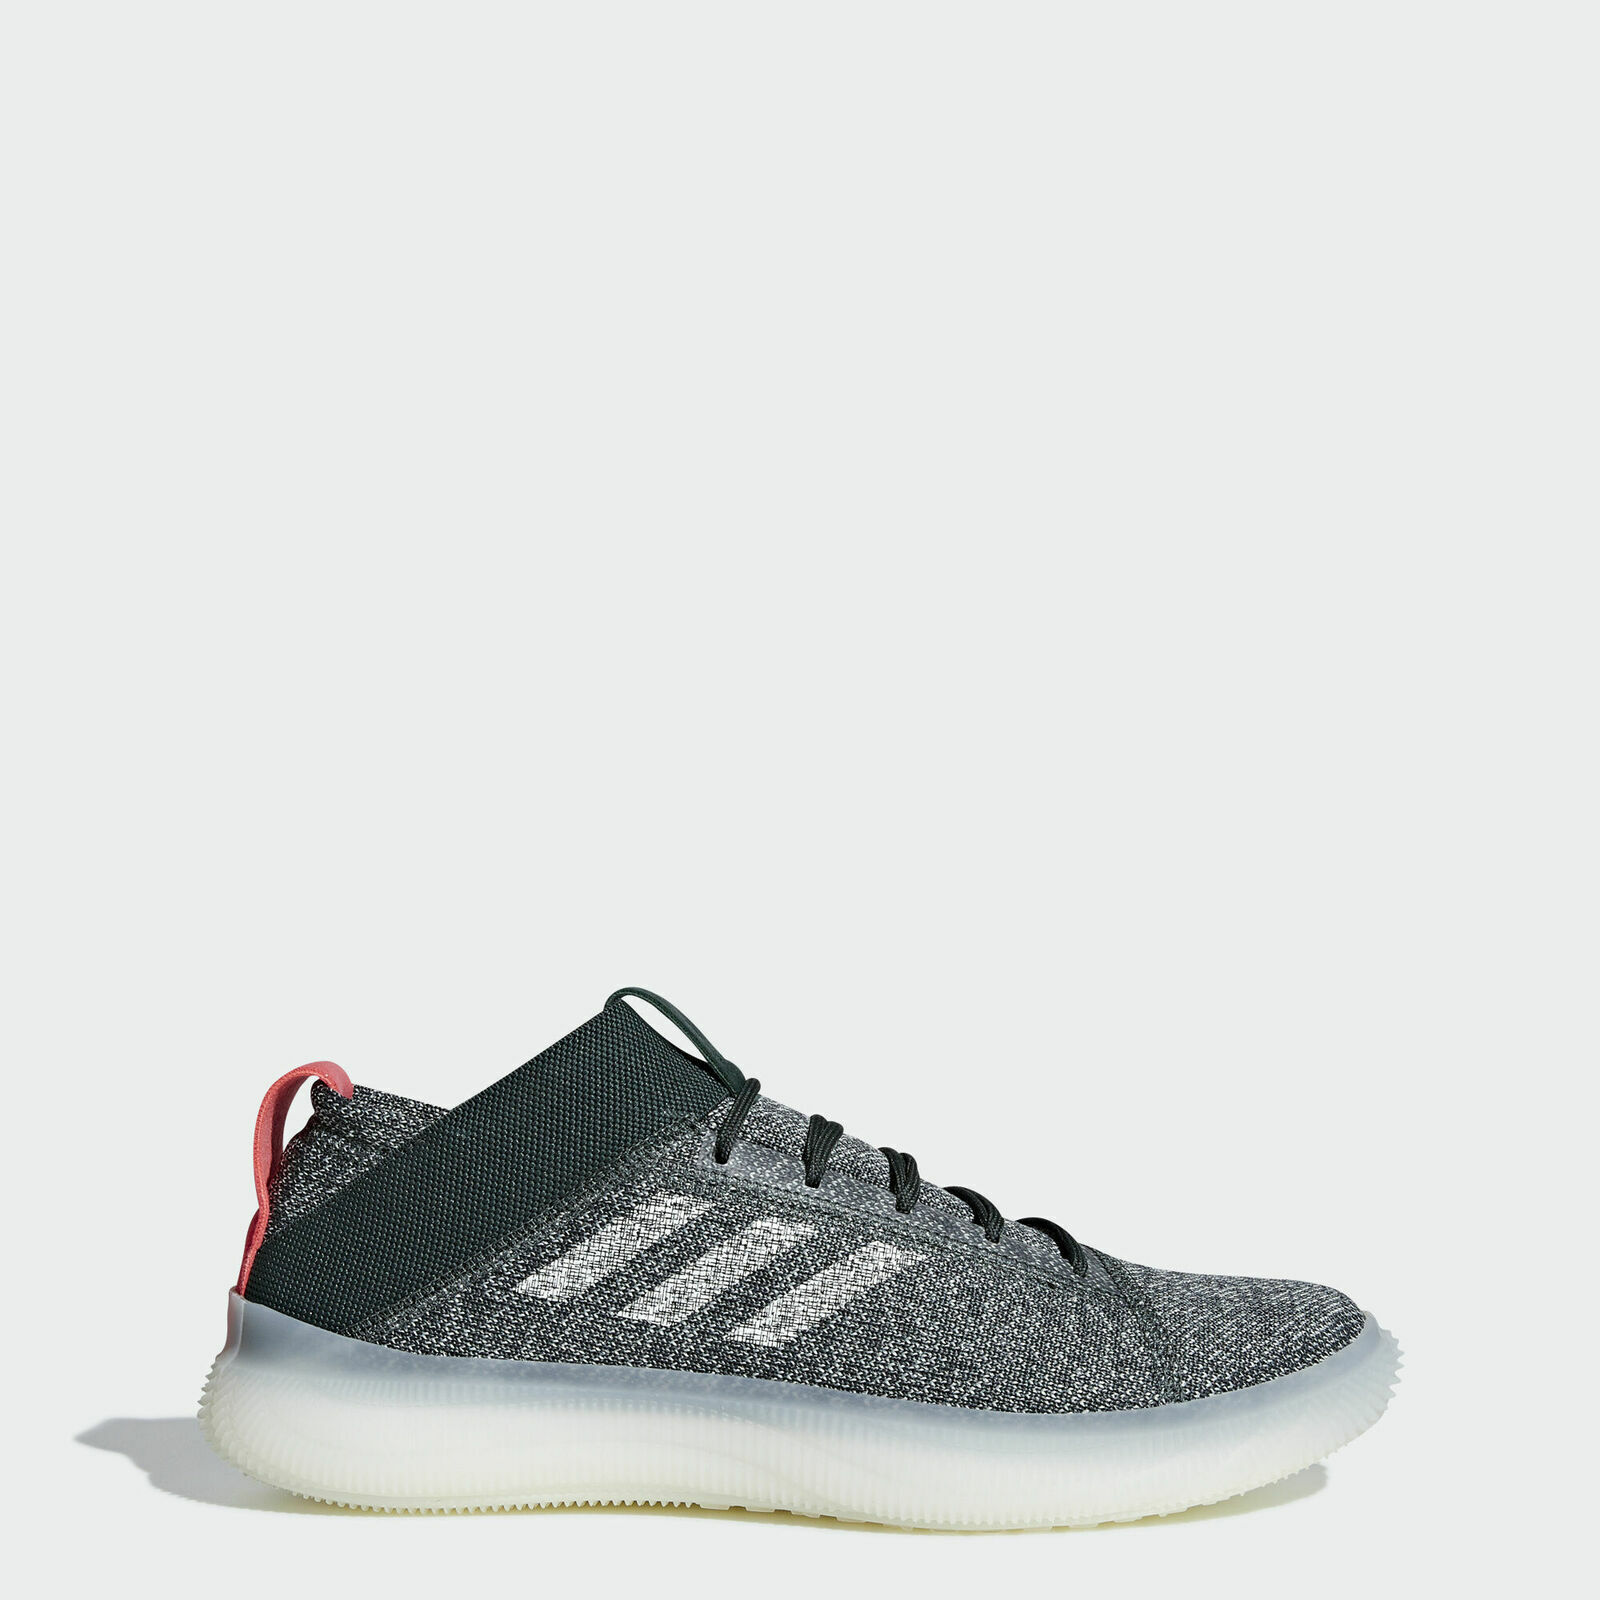 NEW MENS ADIDAS PURE BOOST TRAINER SNEAKERS BB7216-SHOES-SIZ